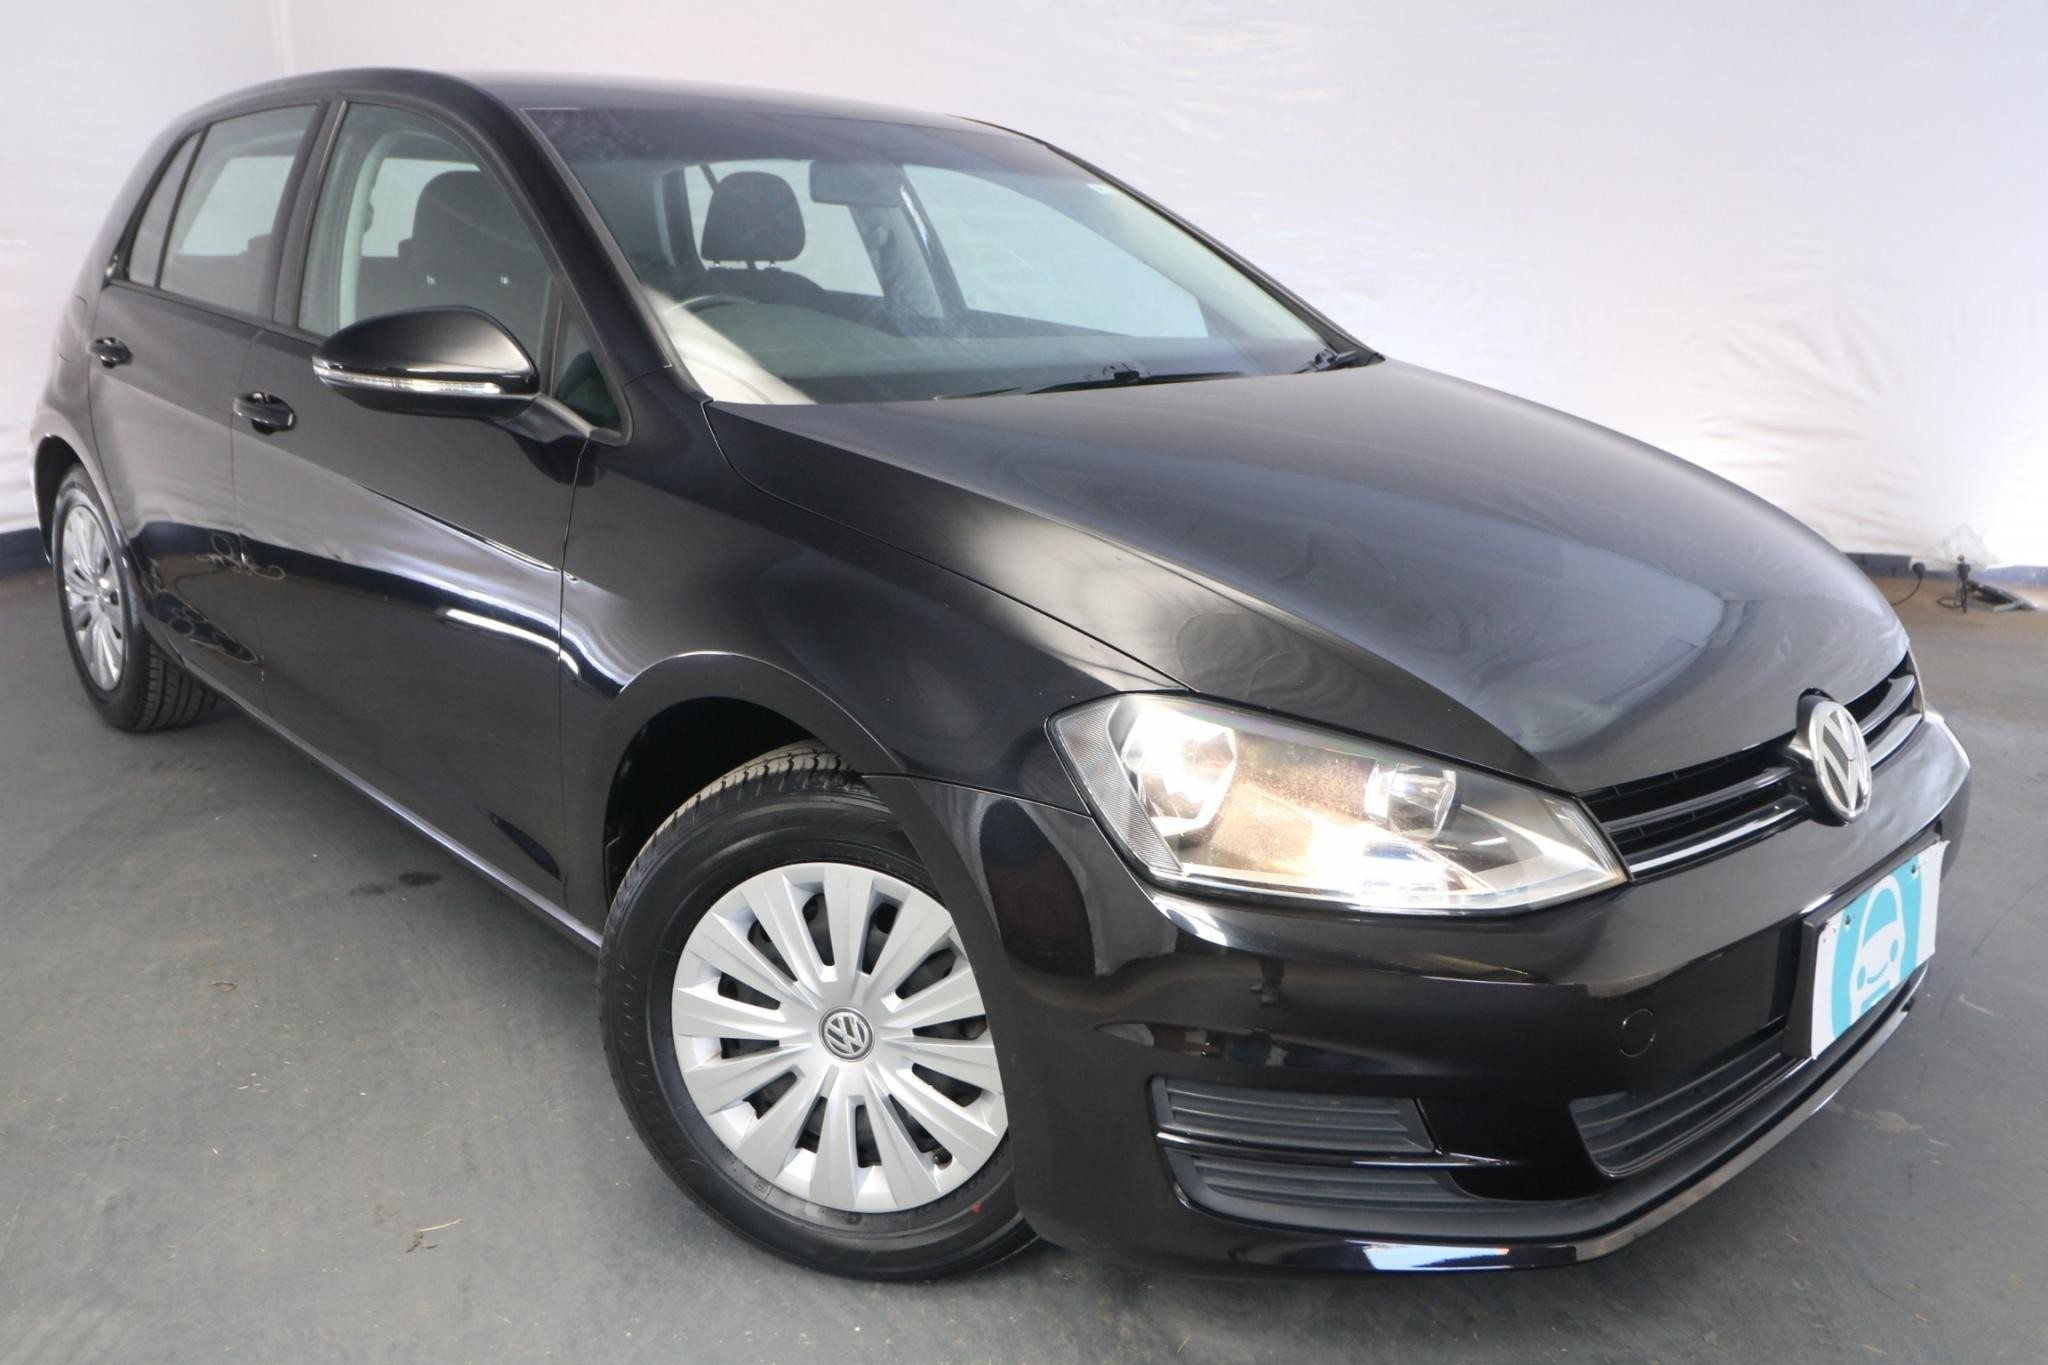 2016 Volkswagen Golf 92 TSI AU MY16 / 7 Speed Auto Direct Shift / Hatchback / 1.4L / 4 Cylinder TURBO / Petrol / 4x2 / 5 door / Model Year '16 July release T9416A